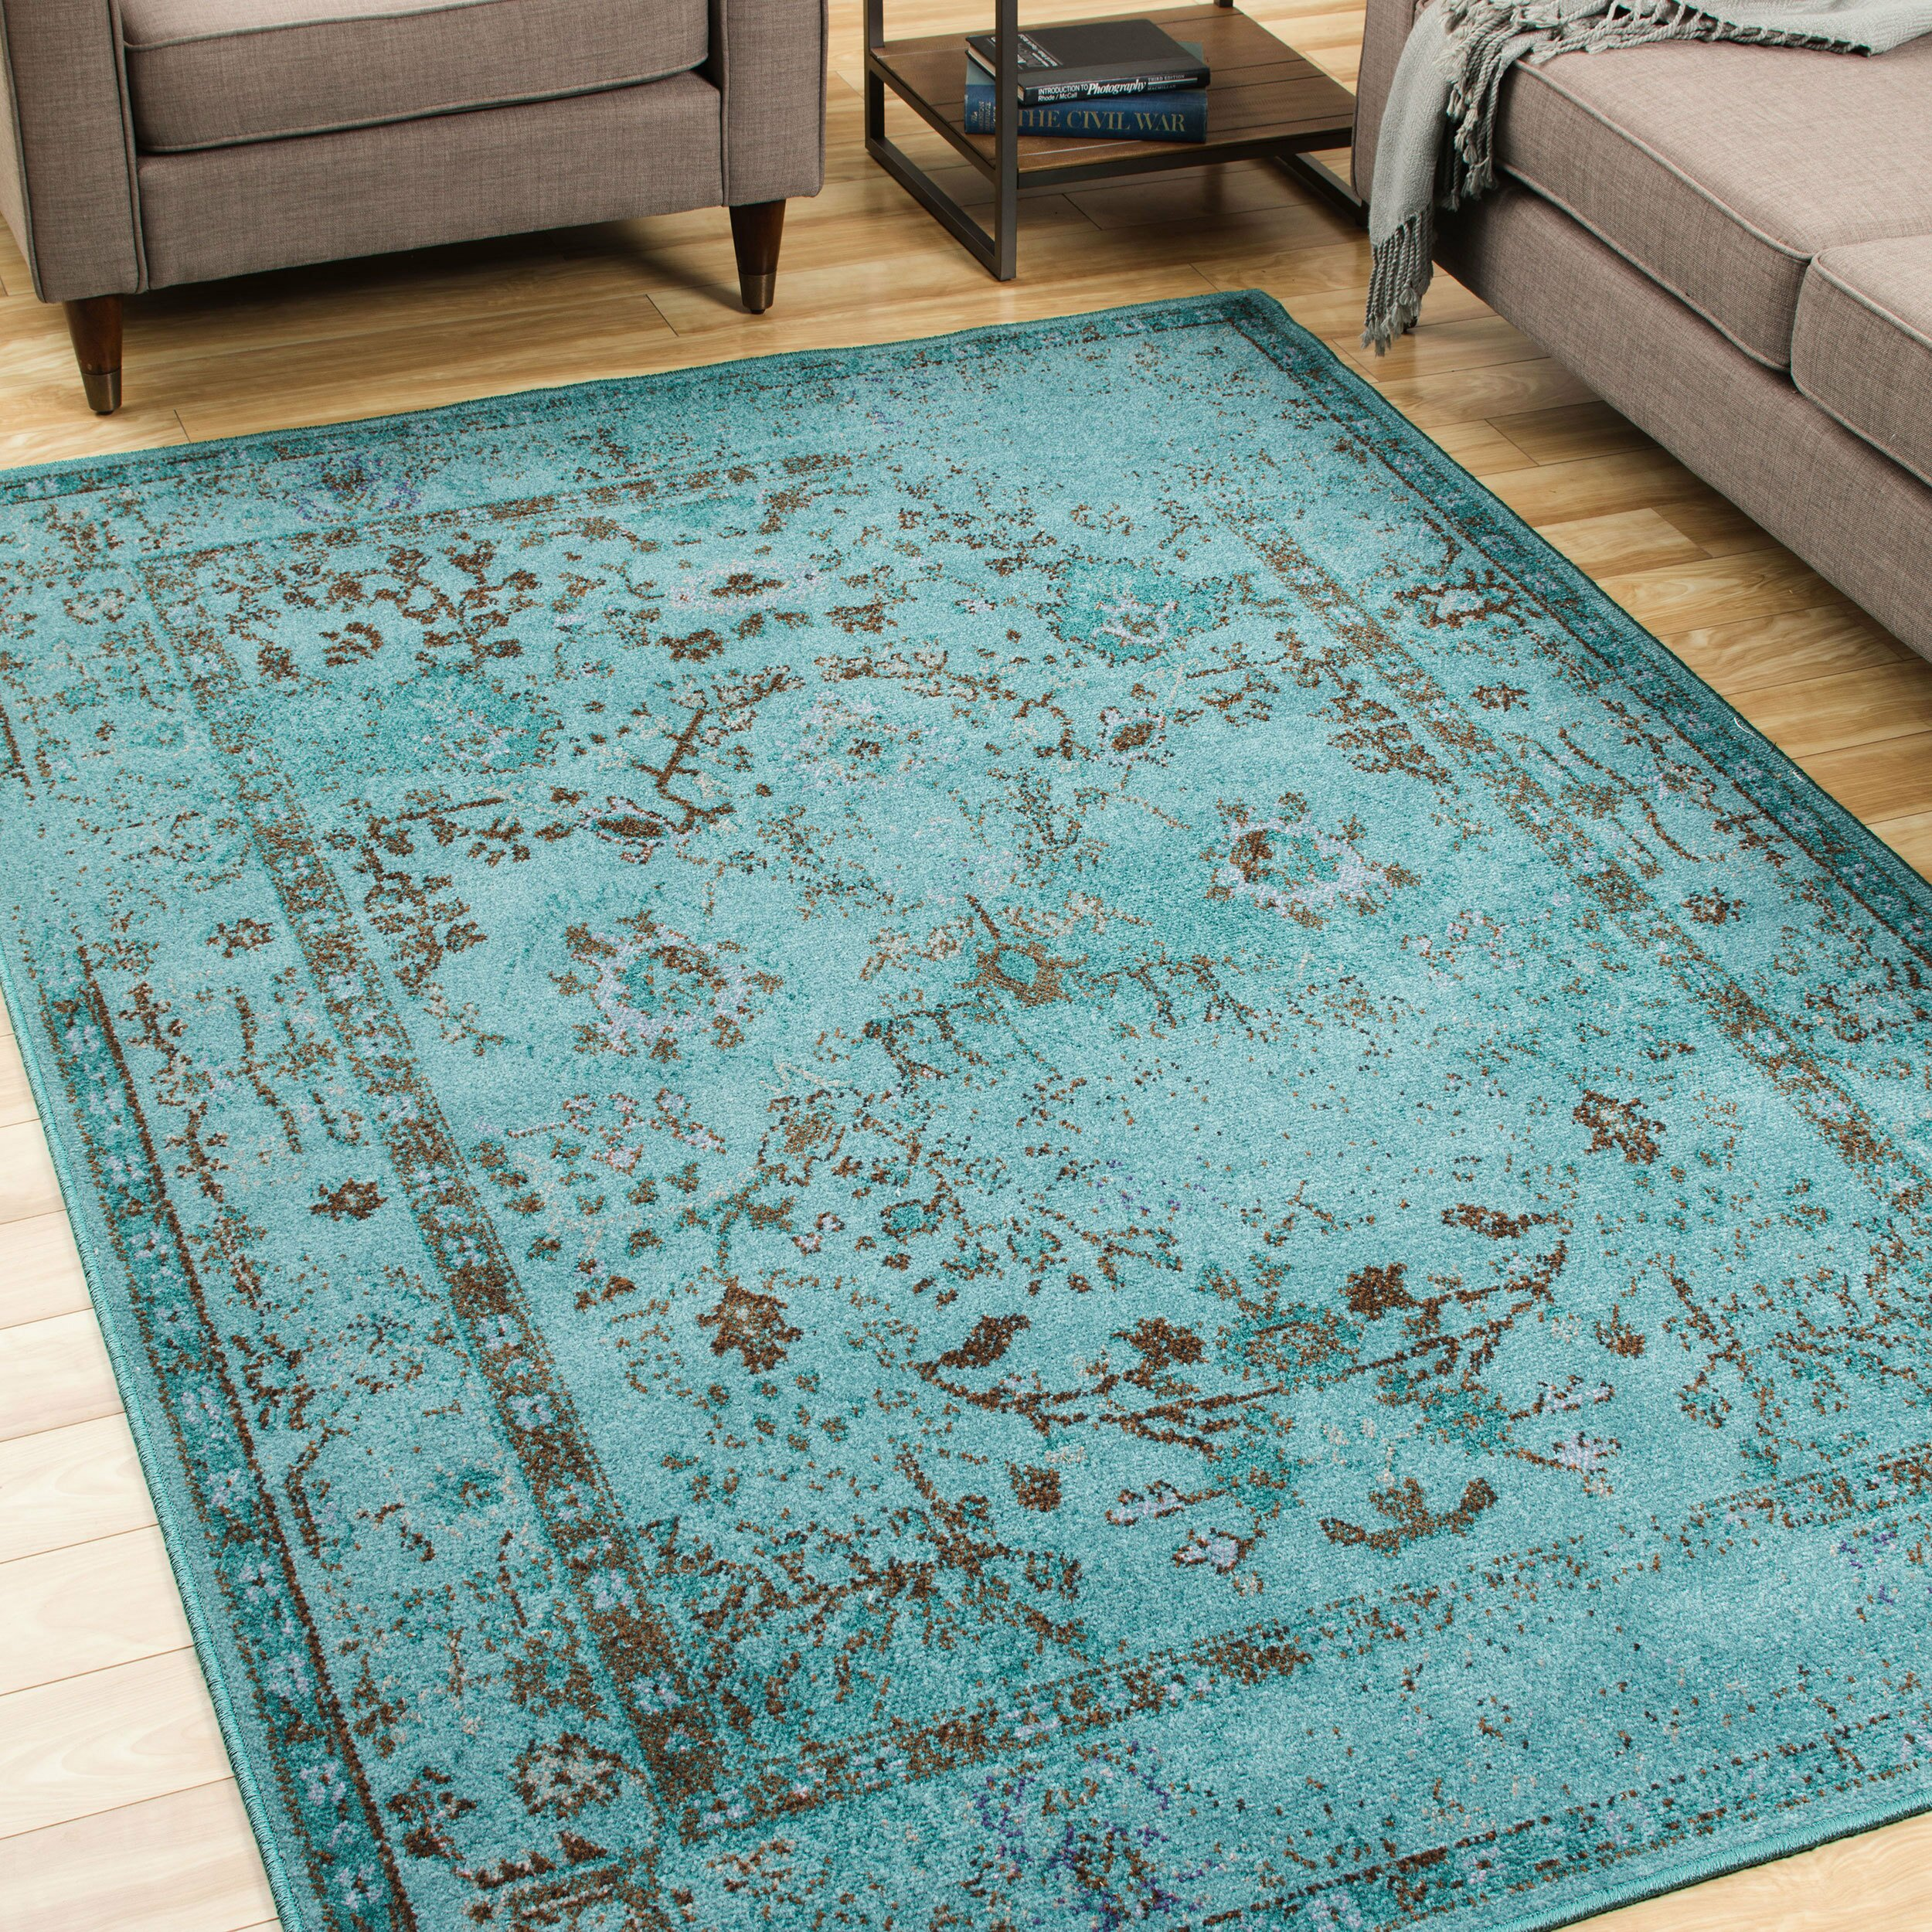 The Conestoga Trading Co. Renaissance Teal/Gray Area Rug